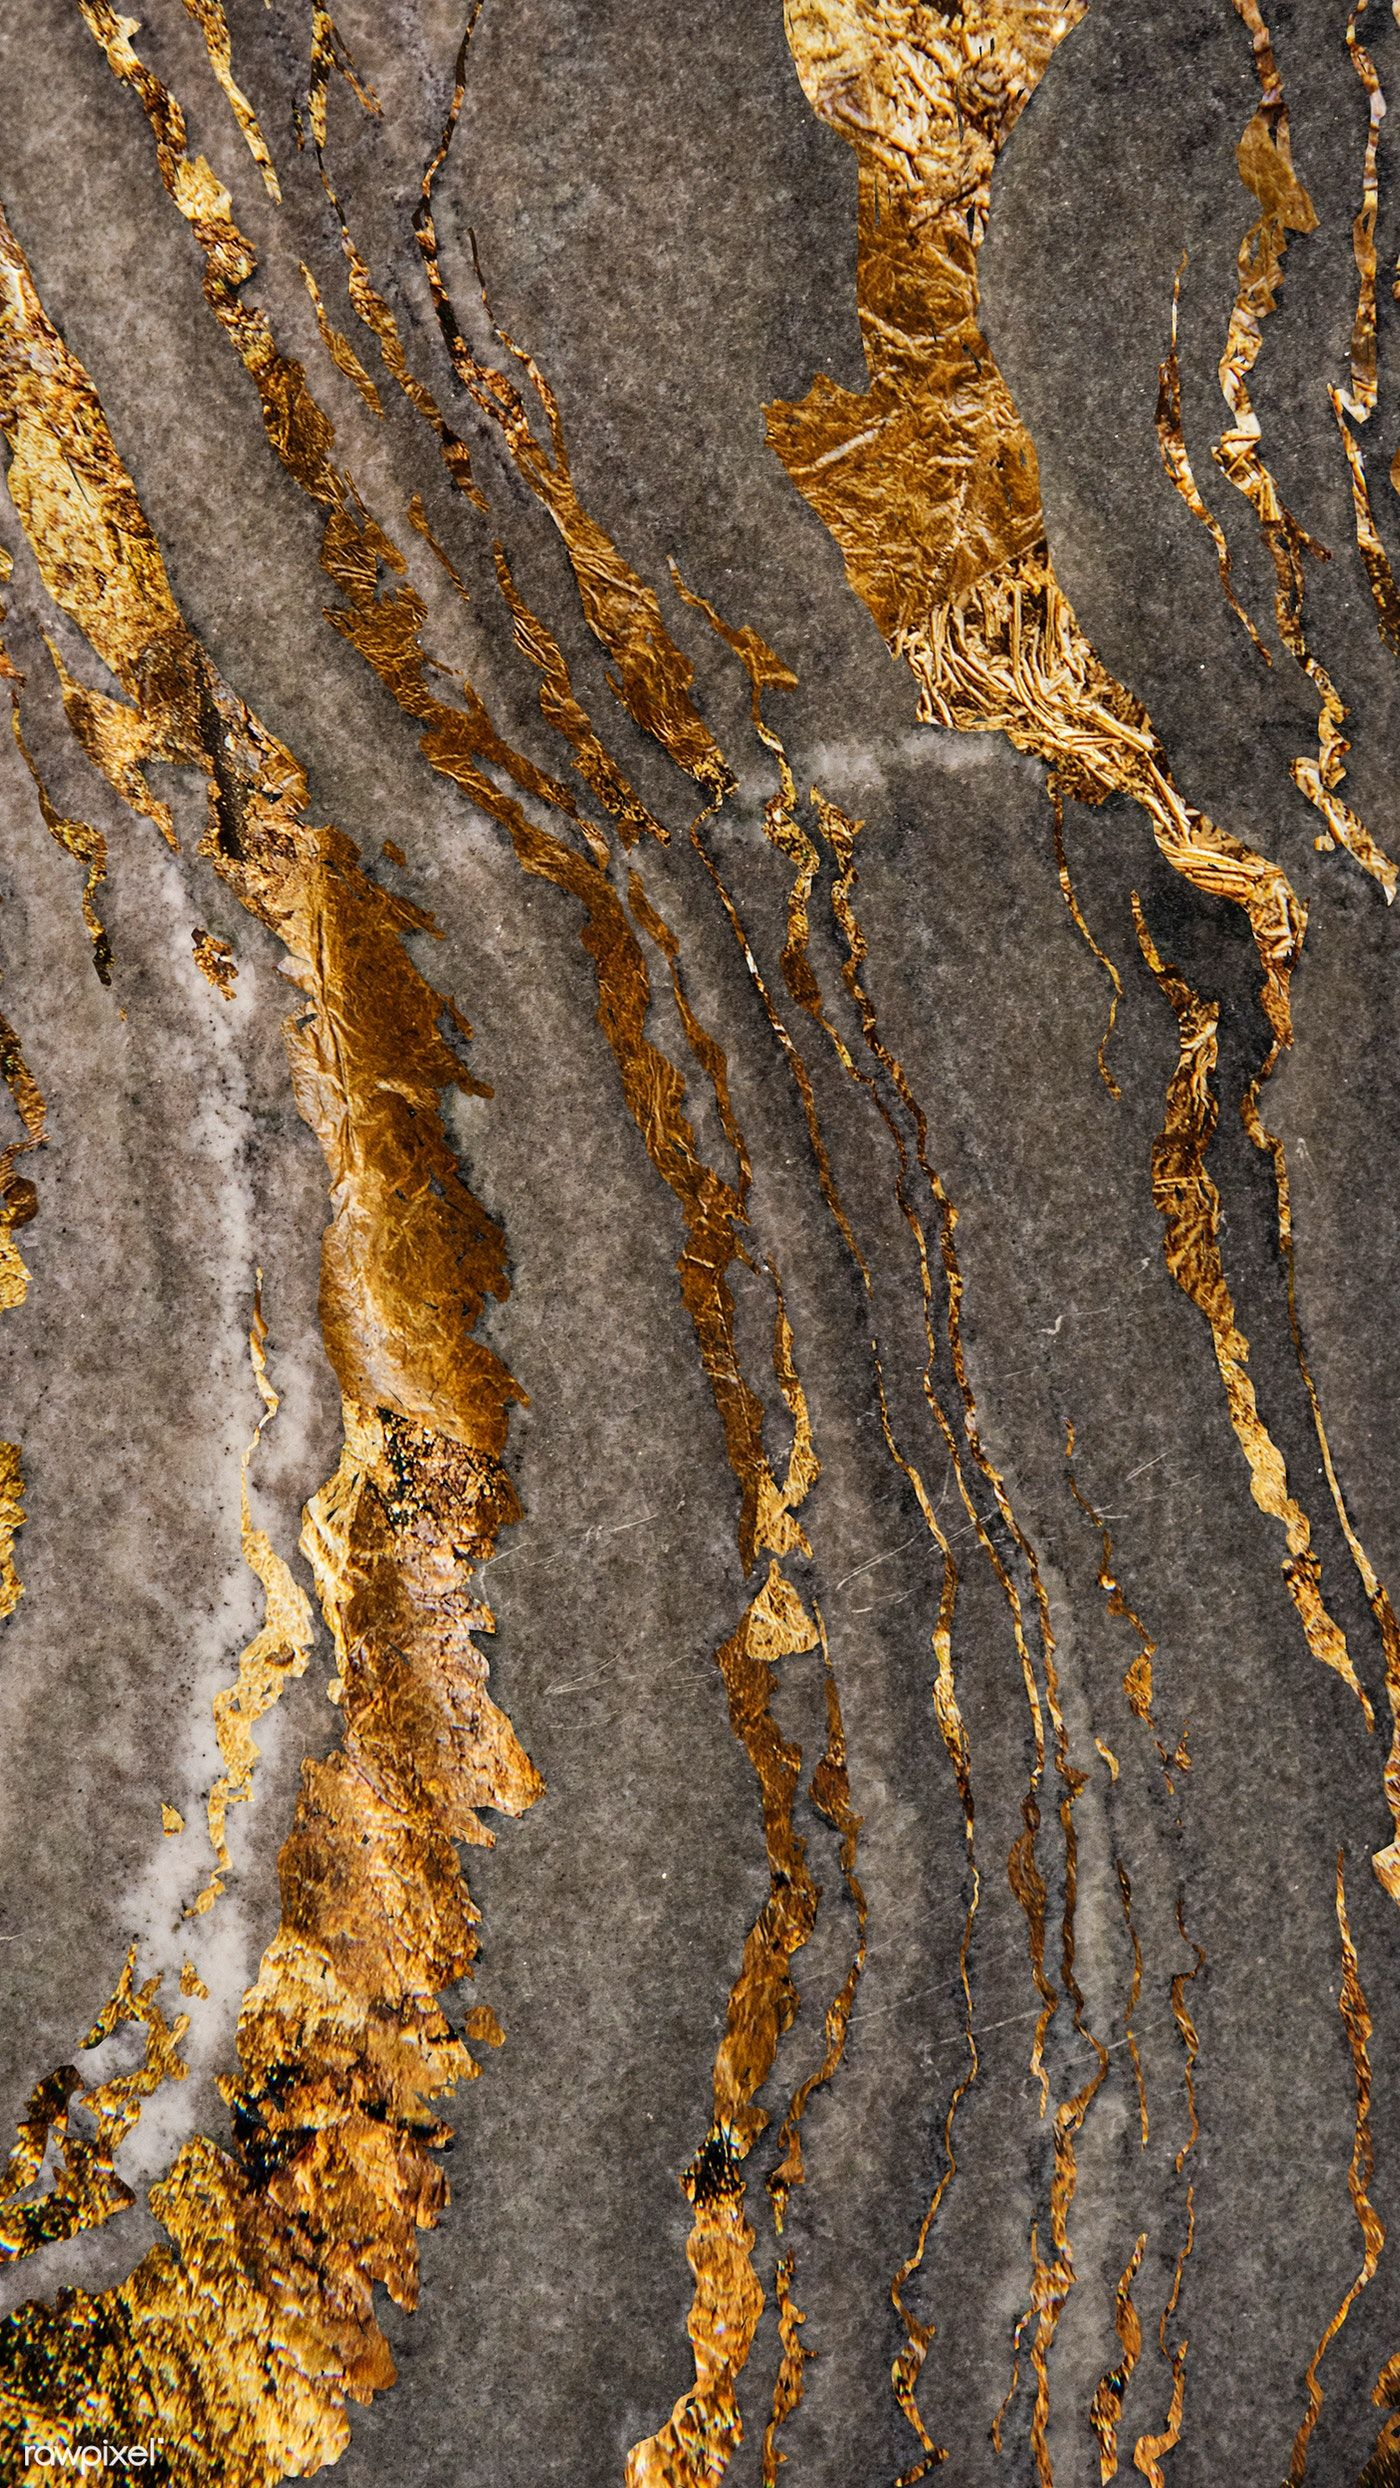 Gray marble rock with gold textured mobile phone wallpaper | premium image by rawpixel.com / Techi